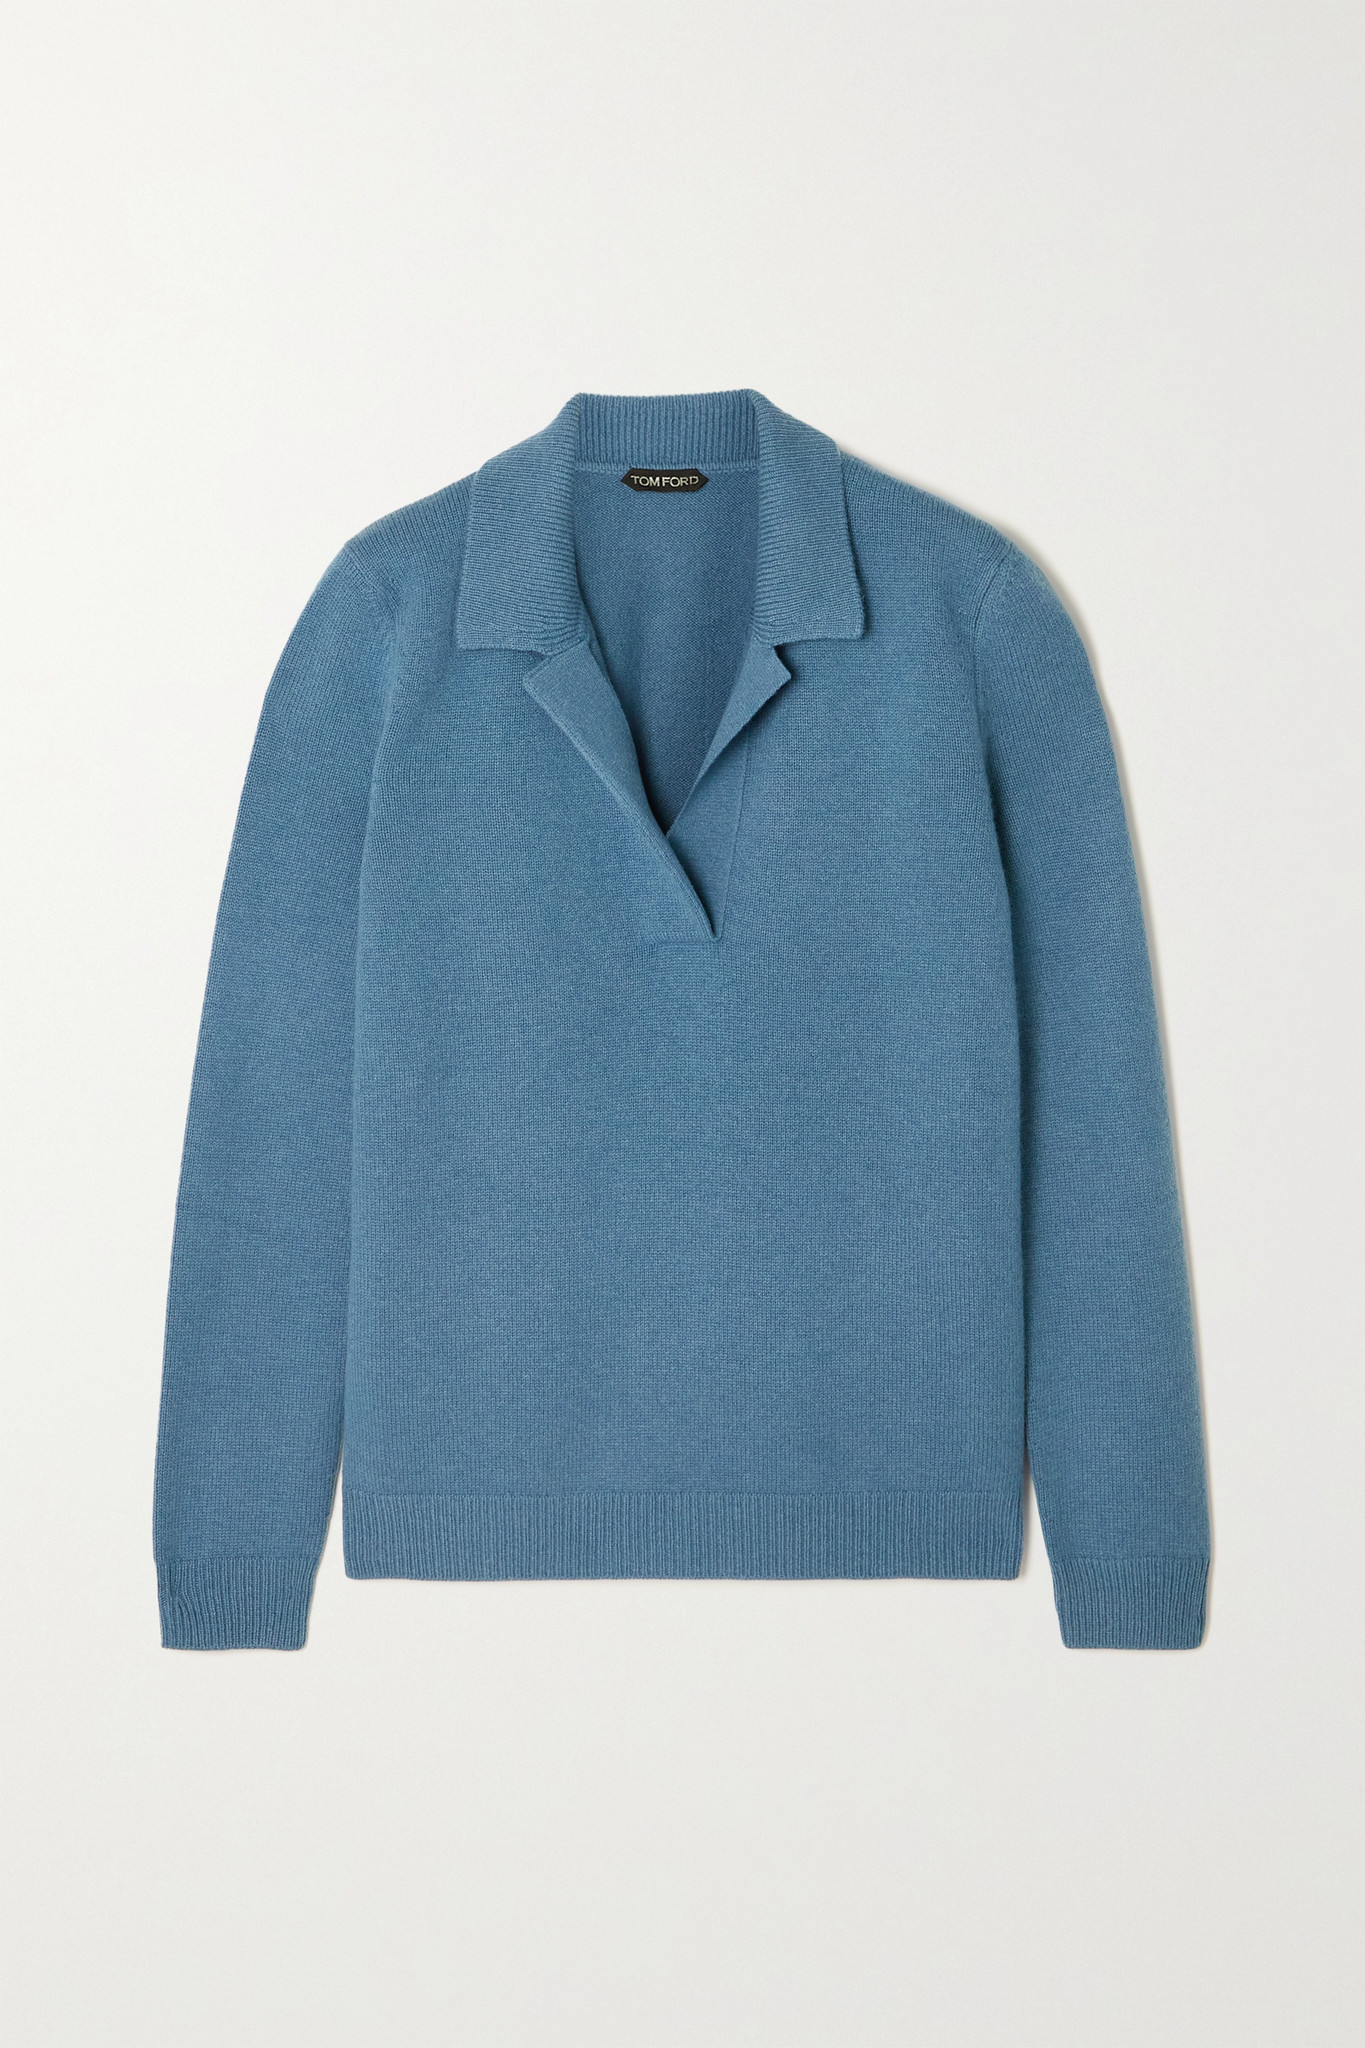 TOM FORD - Wool And Cashmere-blend Sweater - Blue - x large